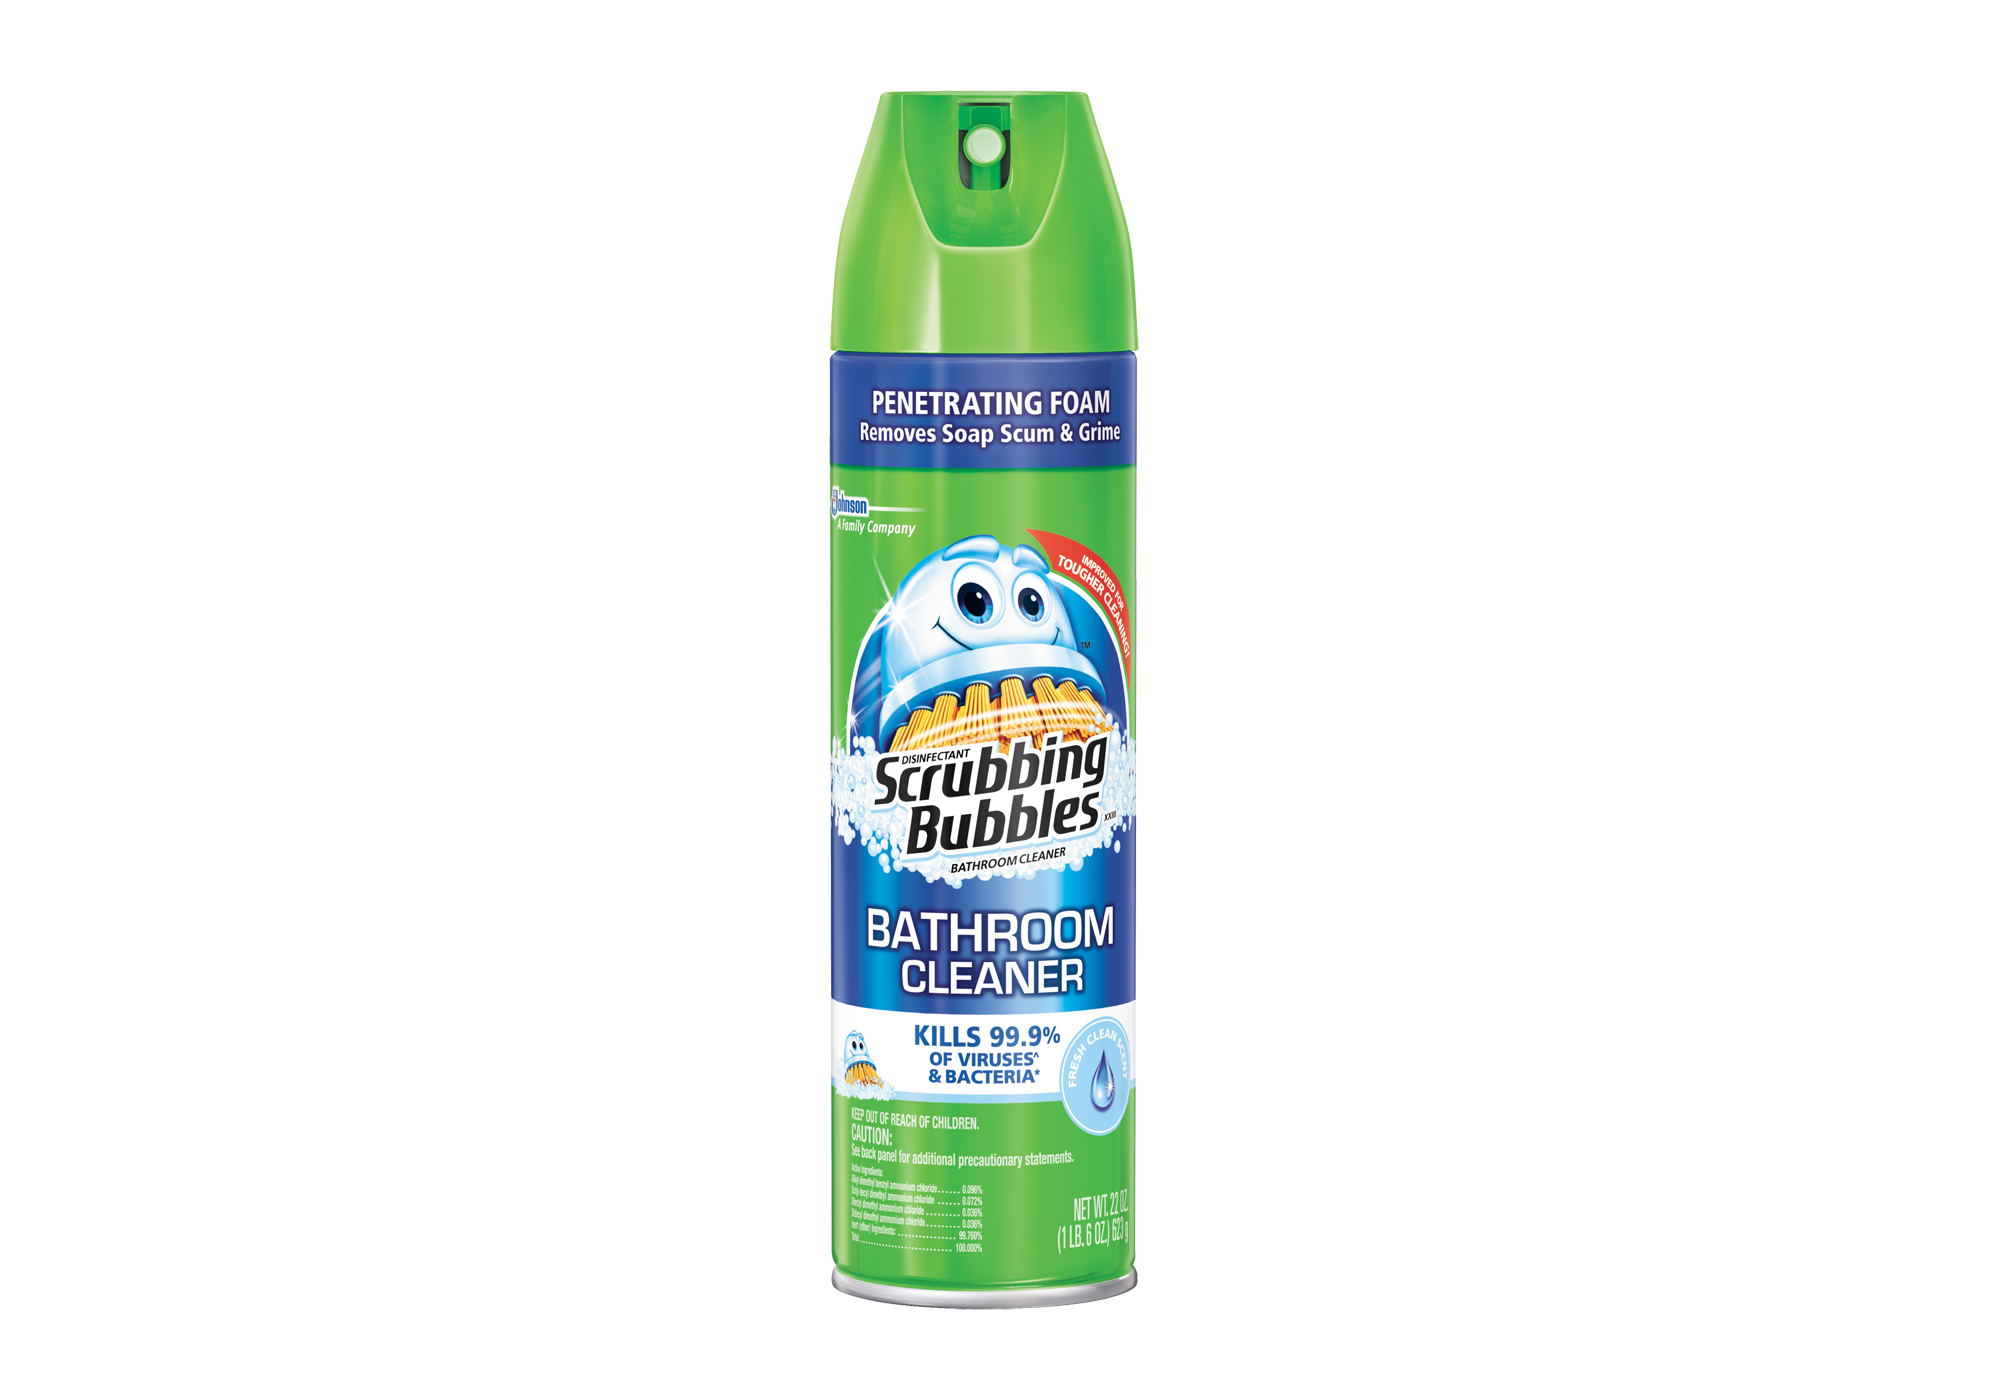 Disinfectant Scrubbing Bubbles Bathroom Cleaner